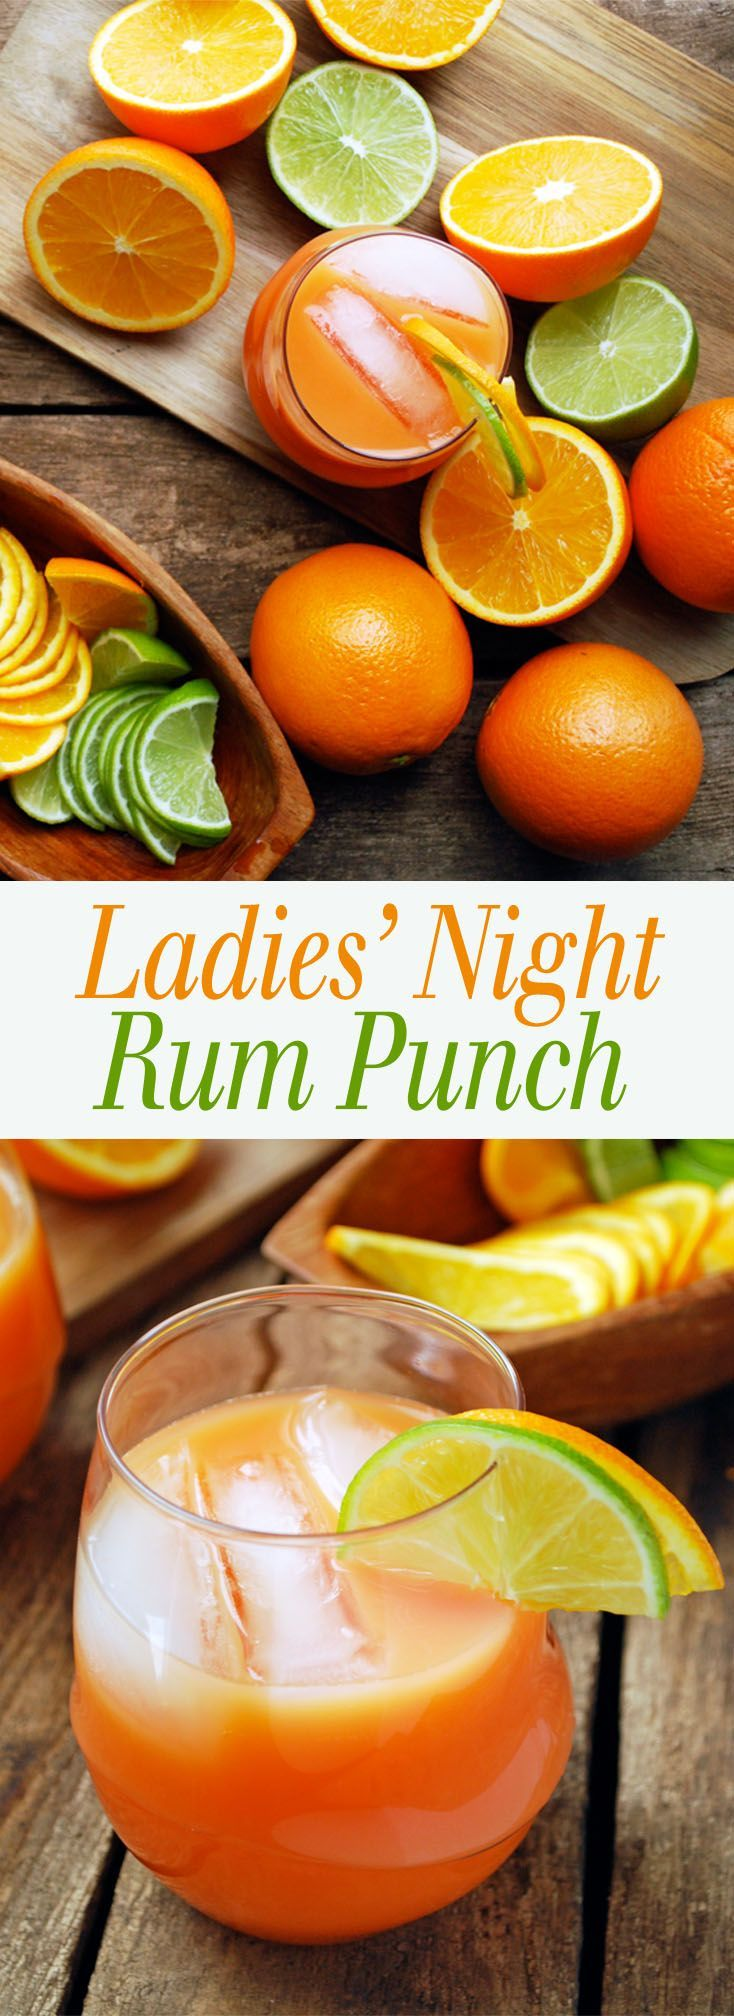 Ladies' Night Rum Punch - Get your girlfriends together and enjoy this simple fruity drink! Also includes a recipe for one if you want to relive the magic alone! theliveinkitchen.com